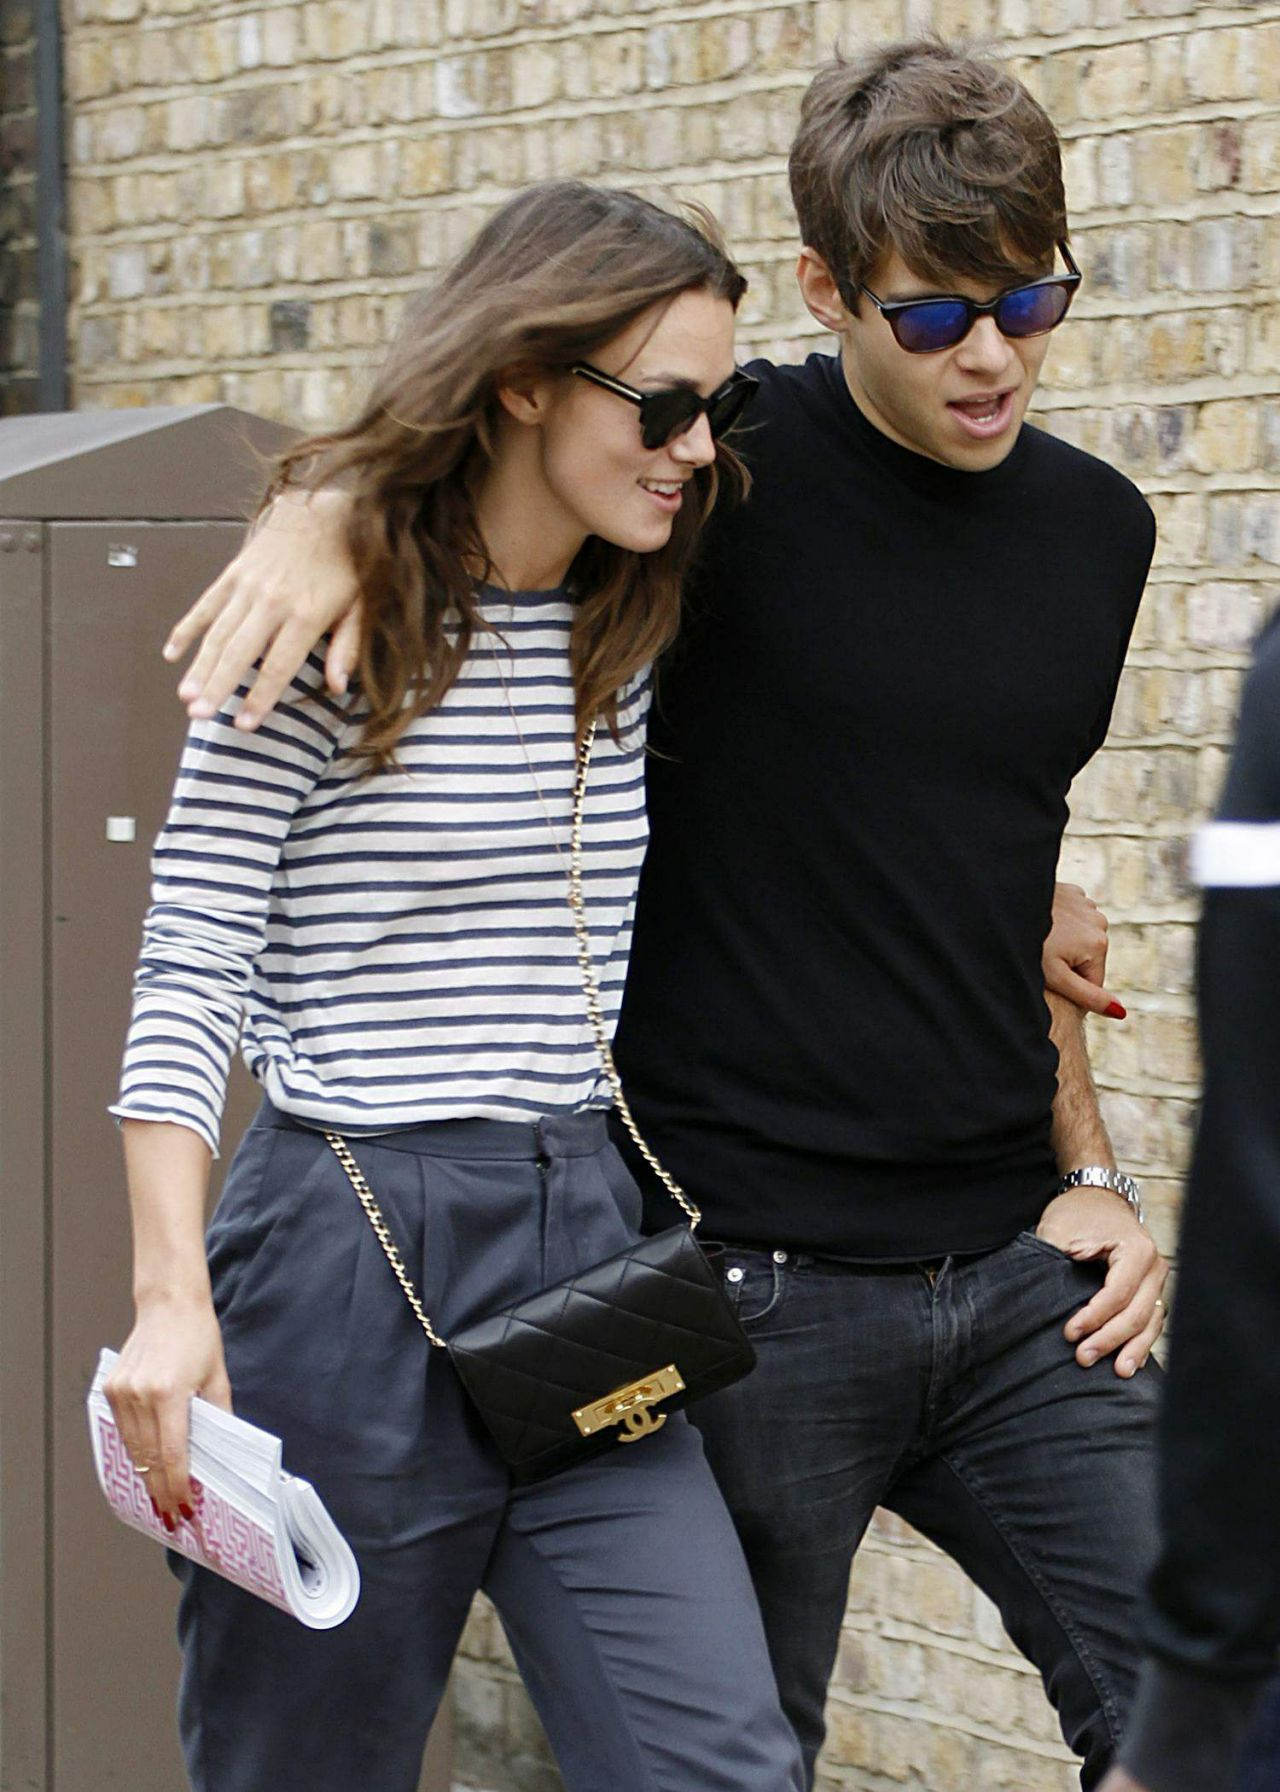 Keira Knightley And Her Husband James Righton - Shopping -4642